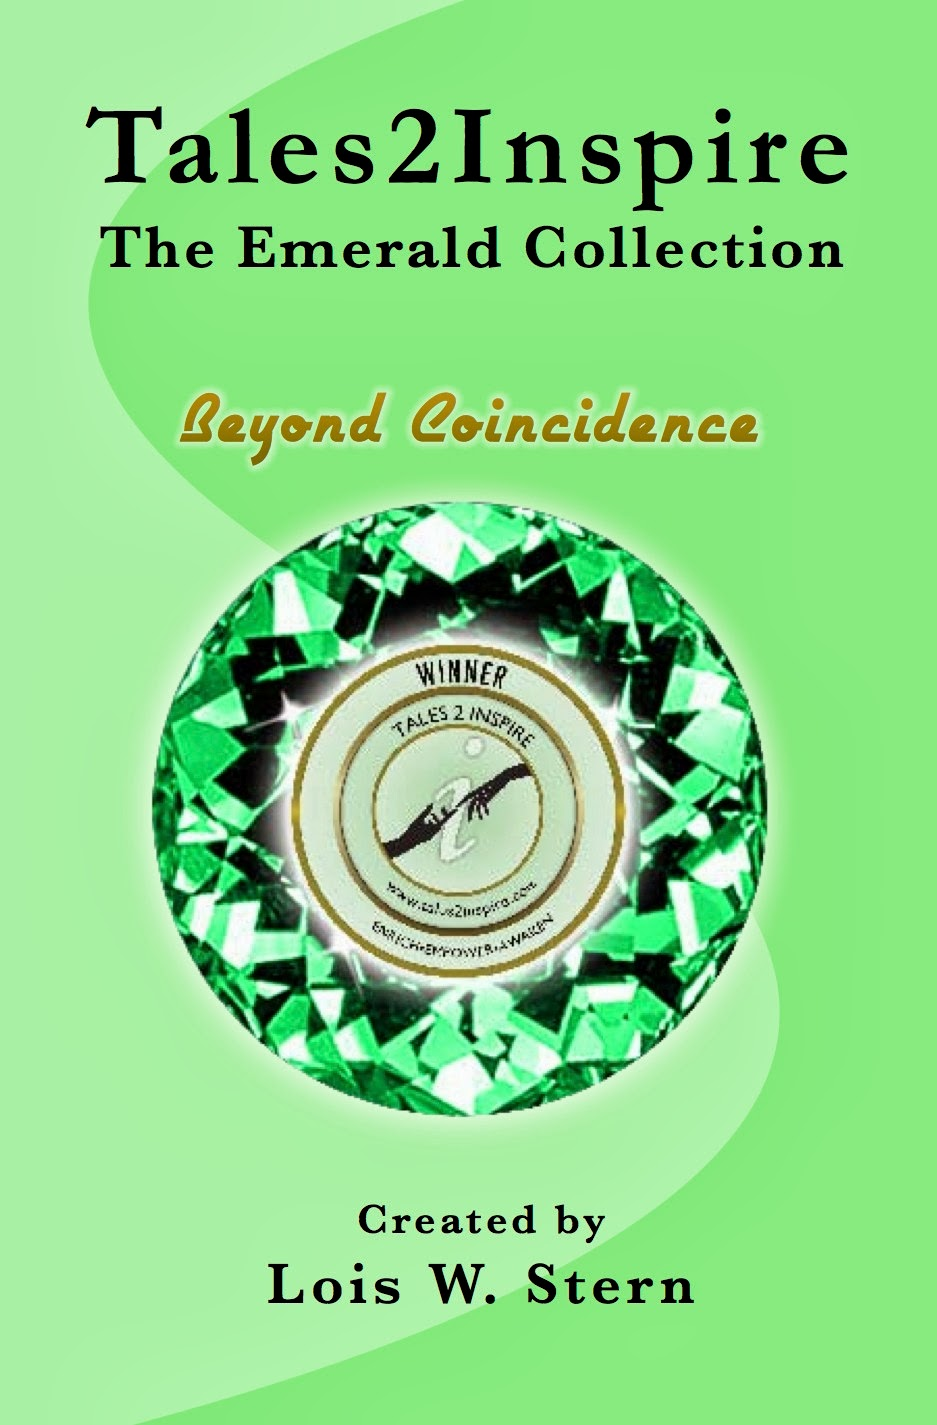 http://www.amazon.com/Tales2Inspire-Emerald-Collection-Beyond-Coincidence-ebook/dp/B00FW9PFUY/ref=la_B005HOO640_1_1?s=books&ie=UTF8&qid=1394517941&sr=1-1